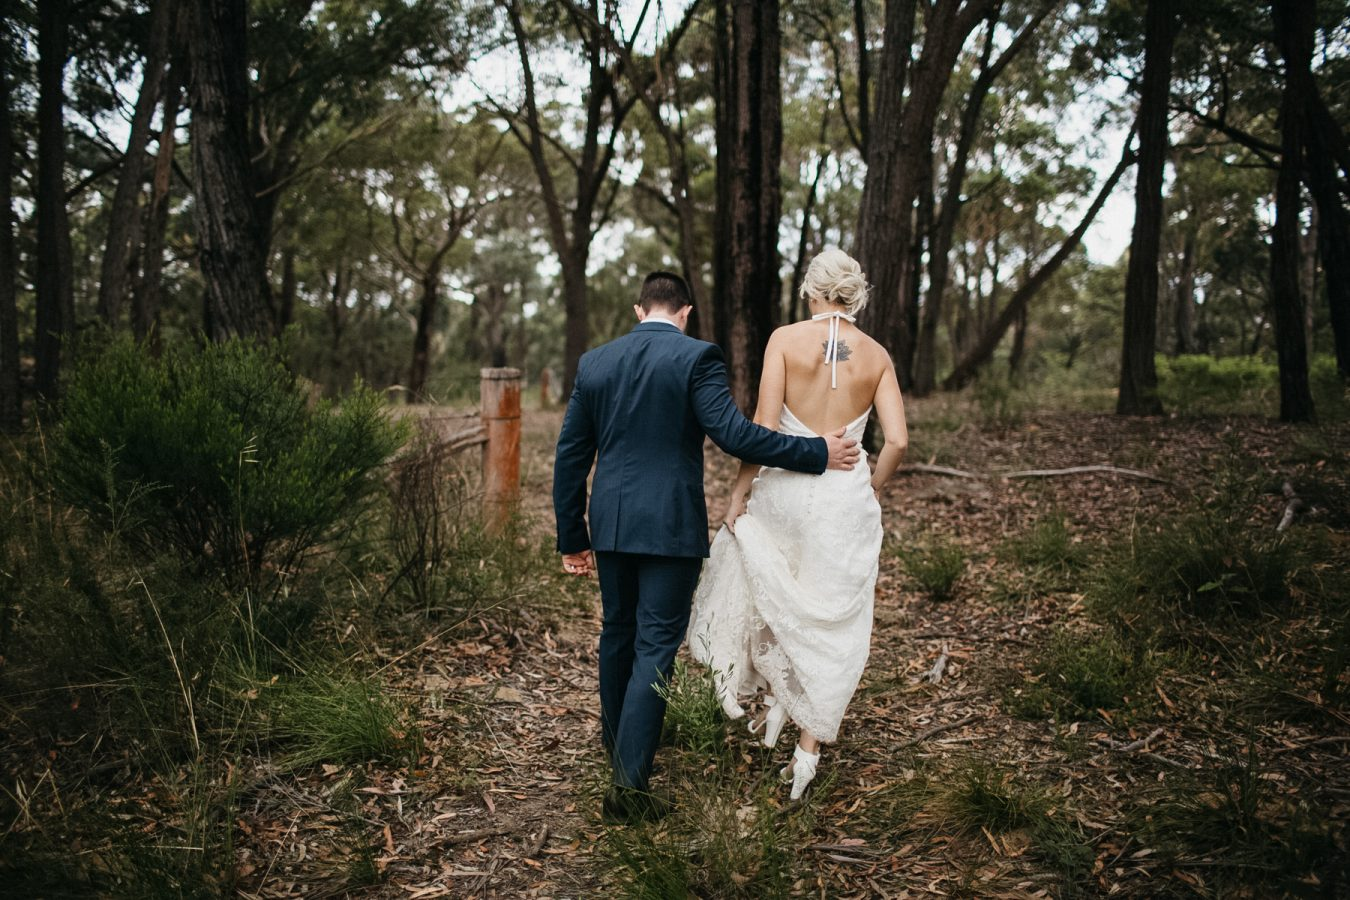 Courtney-Josh-Growwild-Bowral-southernhighlans-Wedding-82